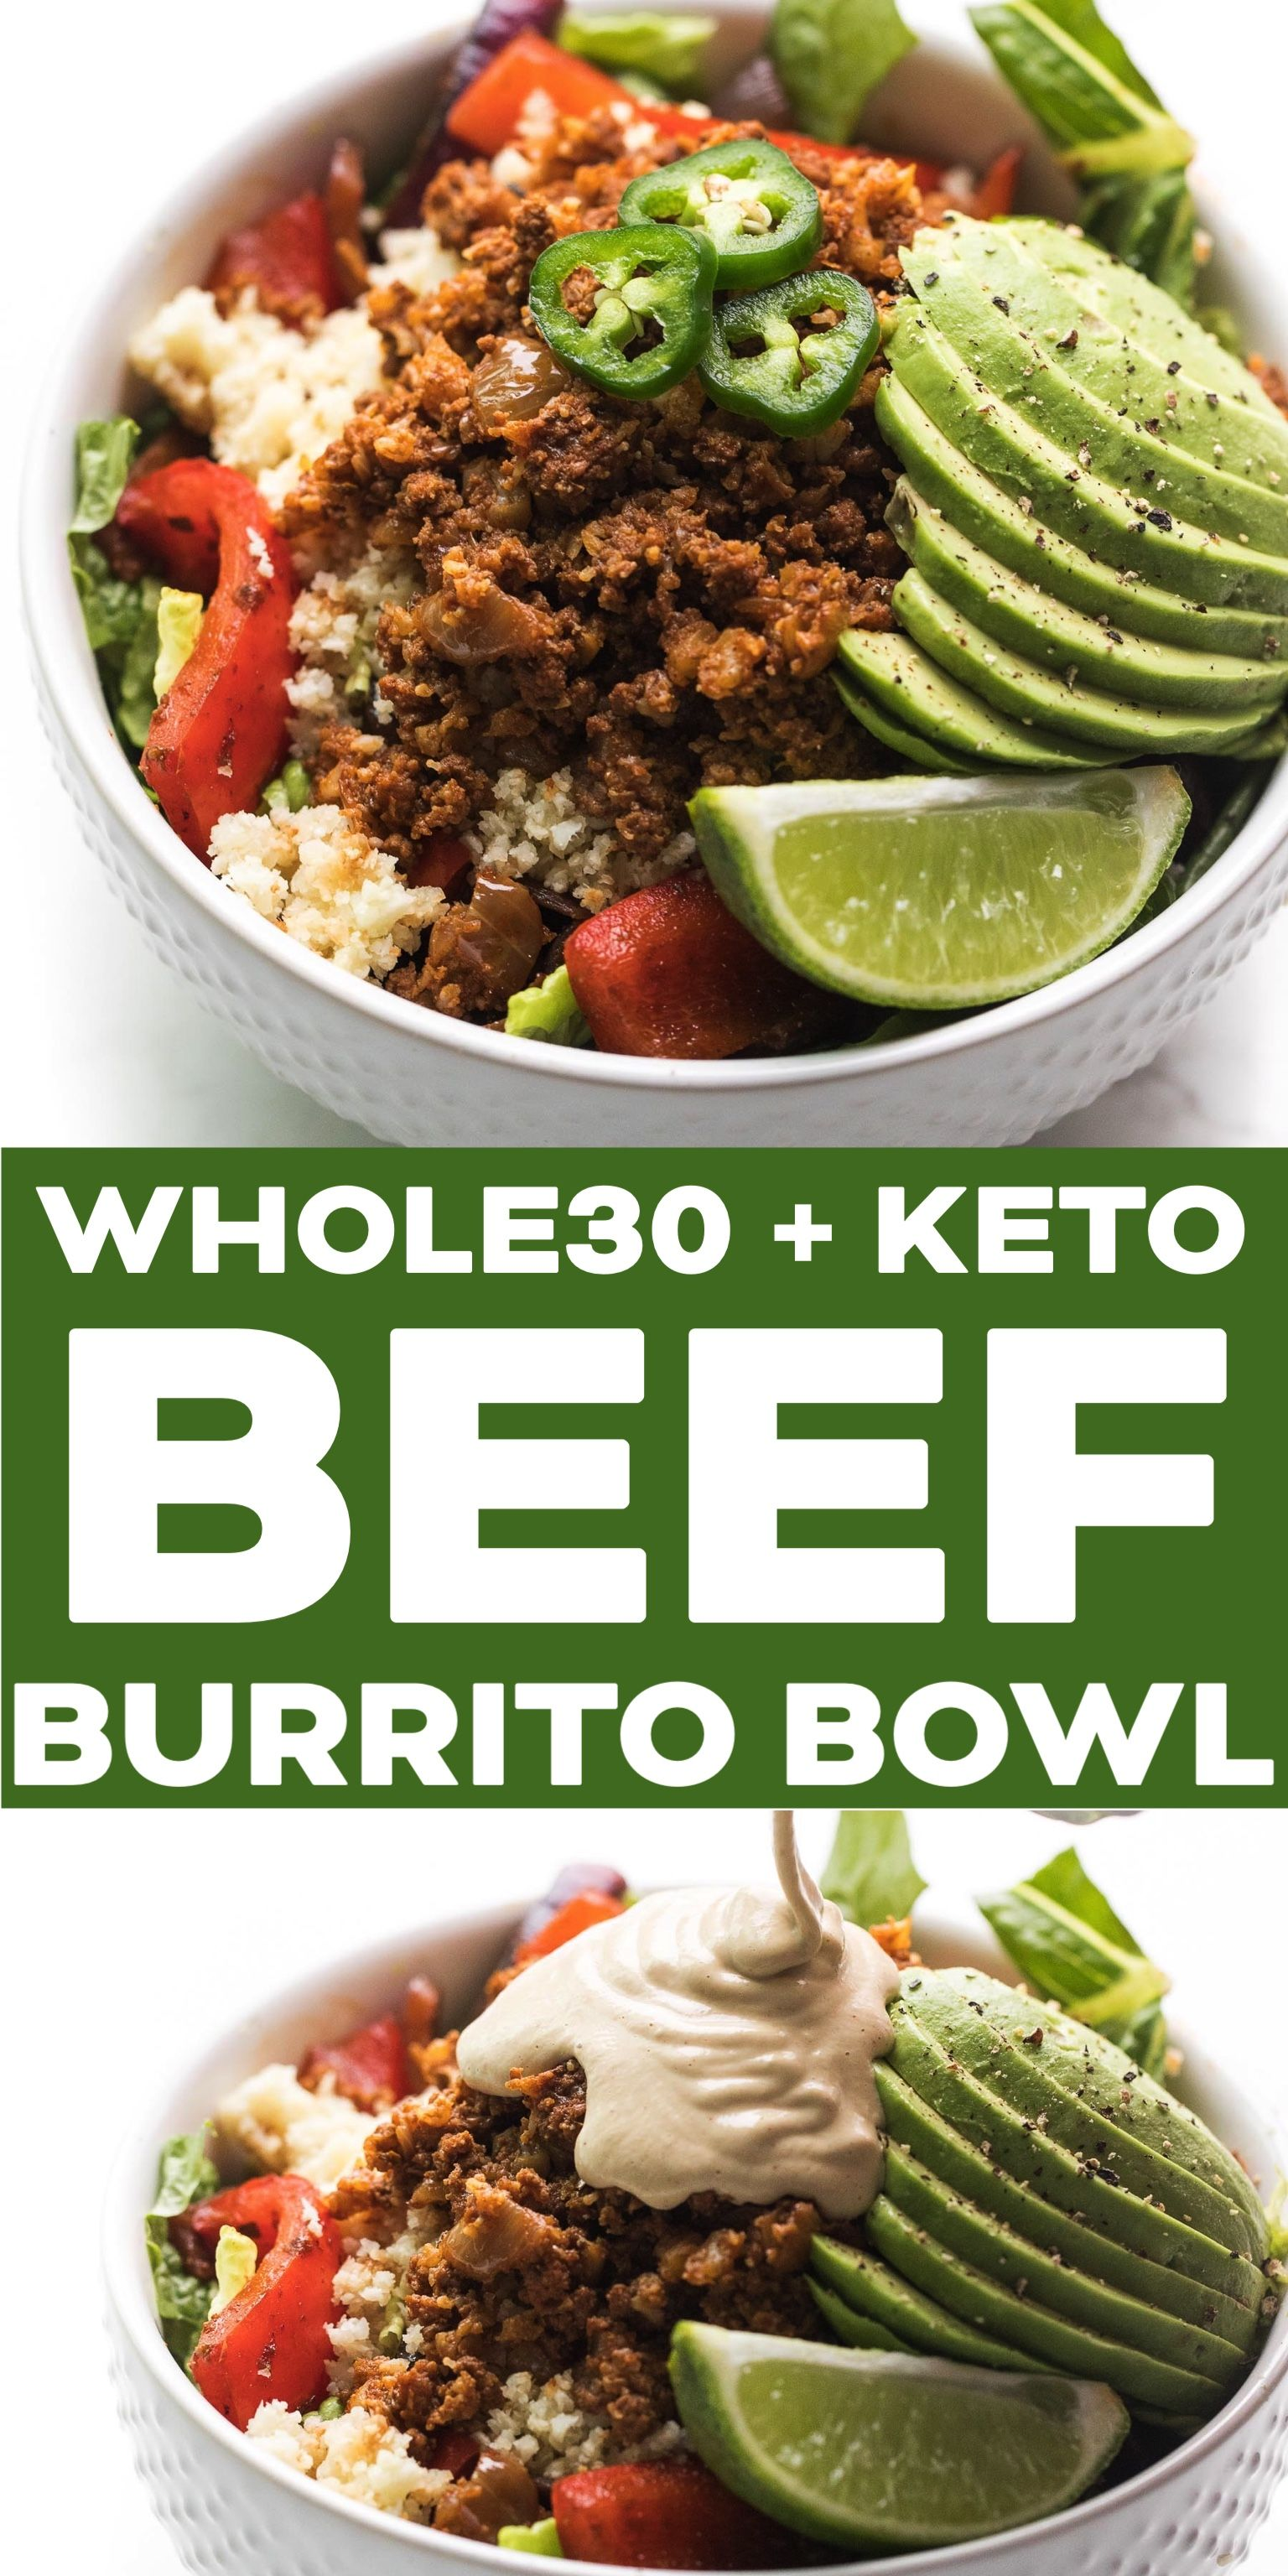 Whole30 Ground Beef Burrito Bowl Recipe - Keto + Paleo Mexican taco bowls with seasoned ground beef, fajita veggies, cauliflower rice and lettuce. You'll want to keep this gluten free, grain free recipe on hand! #whole30 #keto #burritobowl #groundbeeftacos